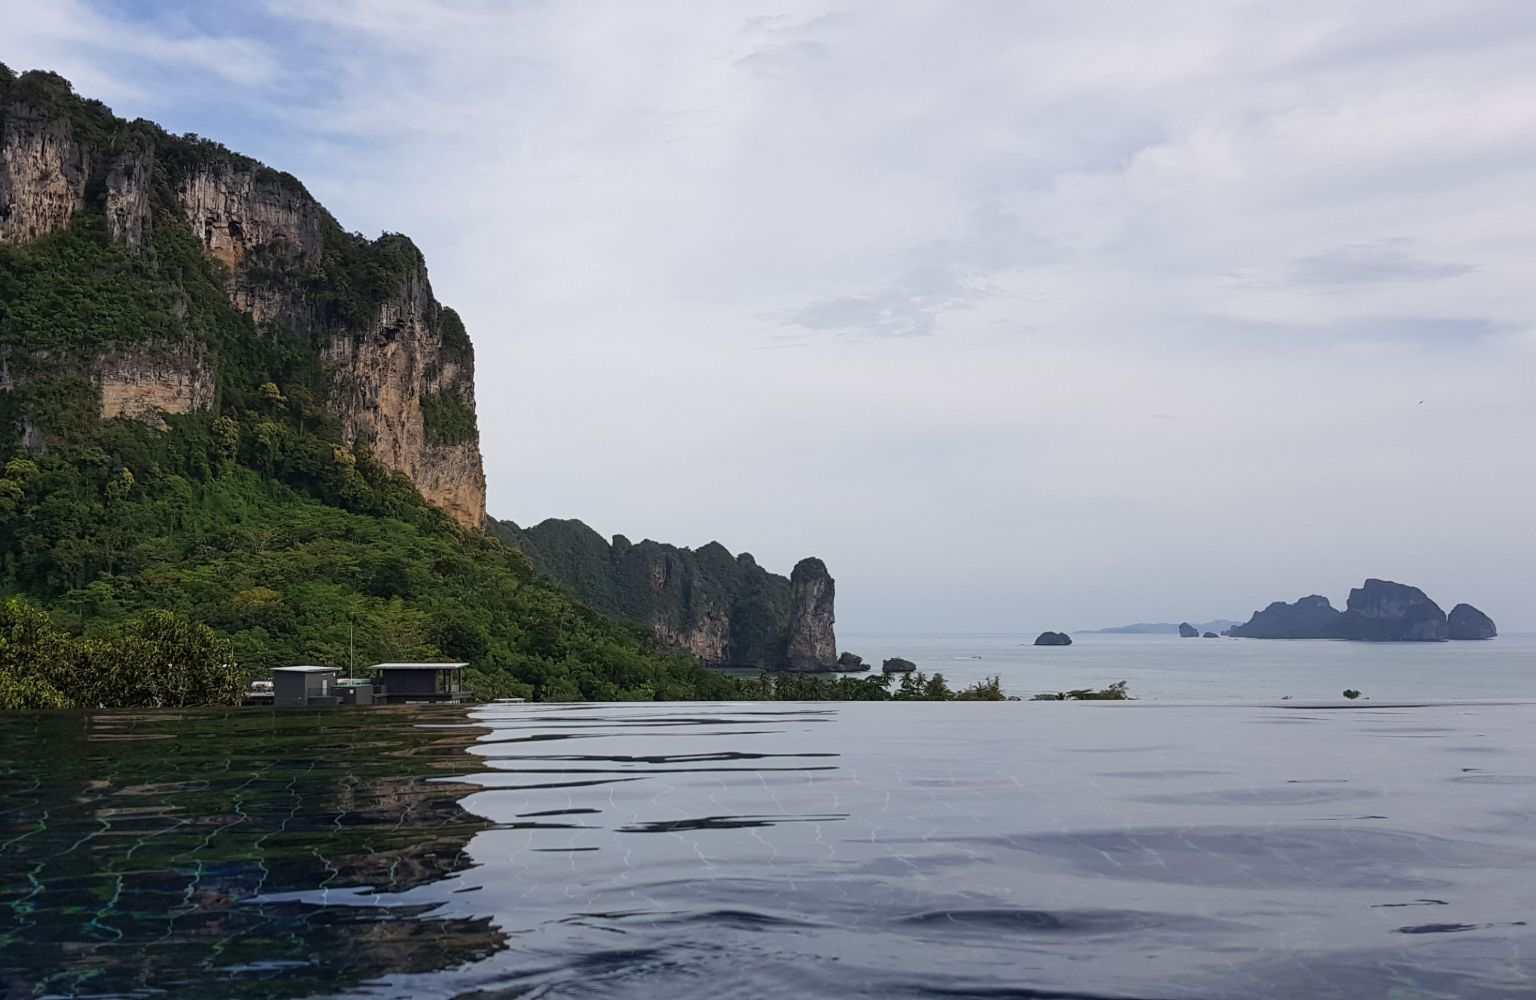 The infinity pool of the Avani Aonang Cliff Krabi Resort in Ao Nang overlooking the ocean and limestone rock formations.